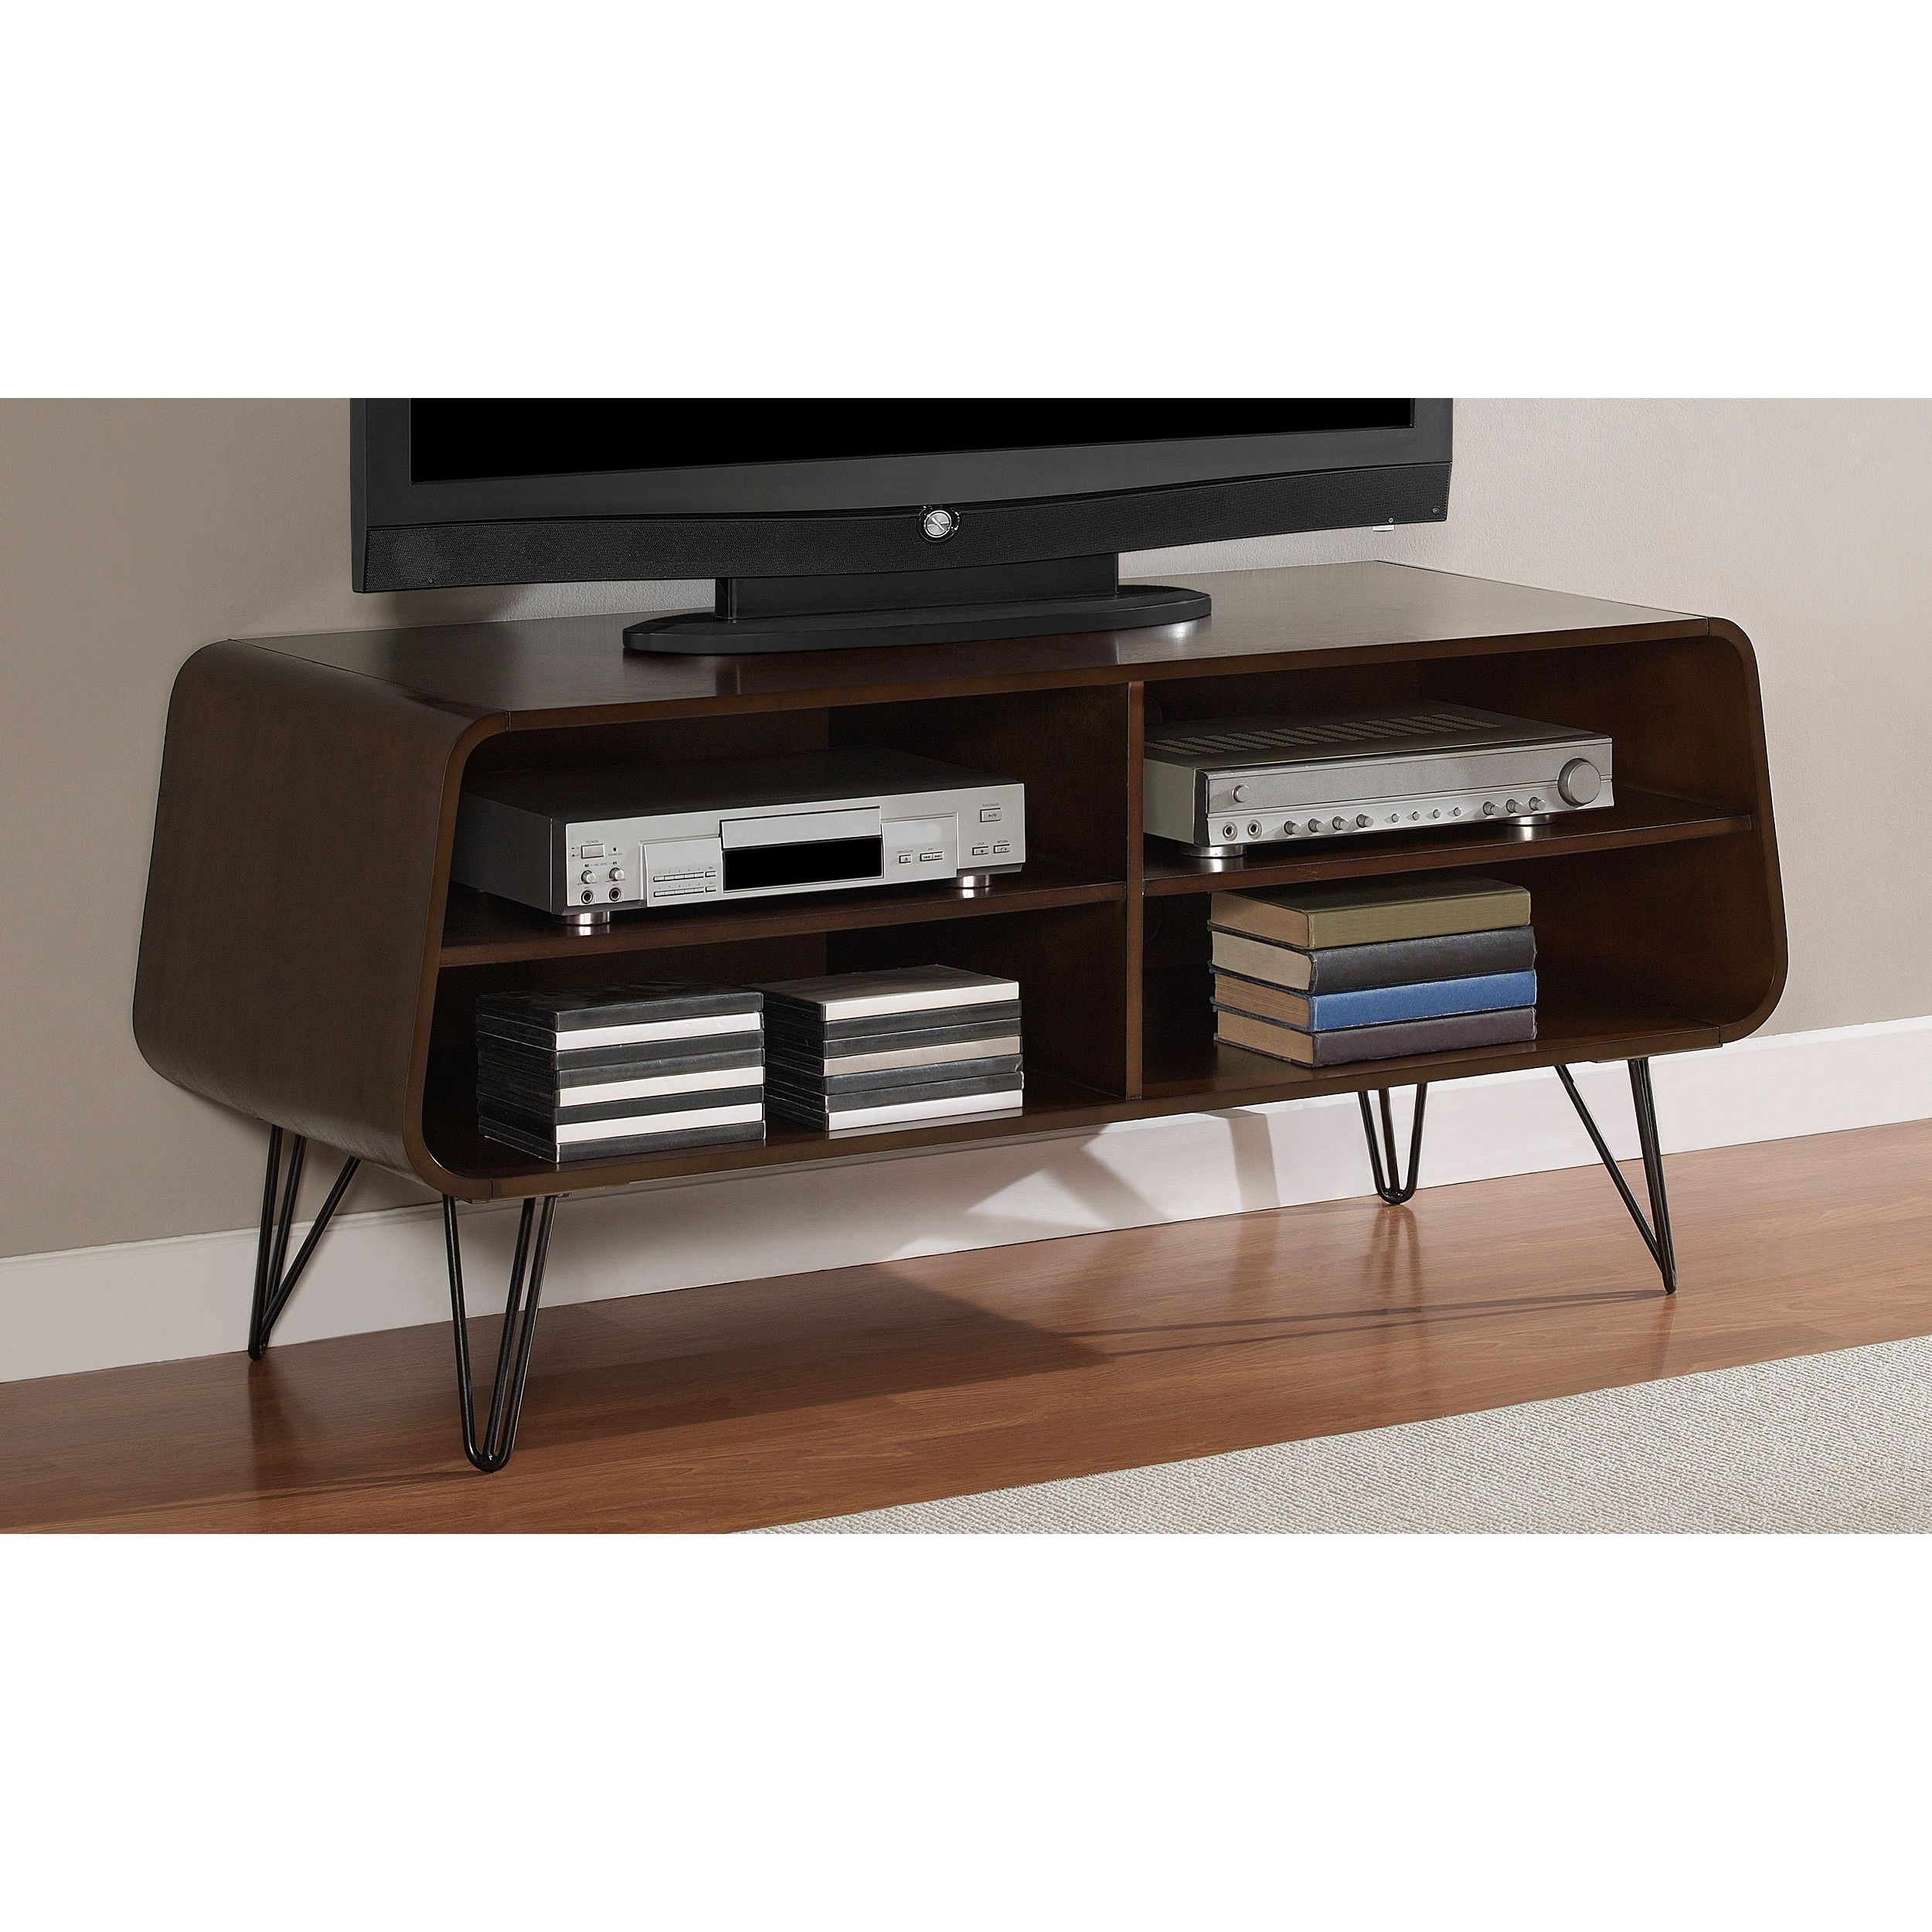 This retro media center design will add style and pizazz